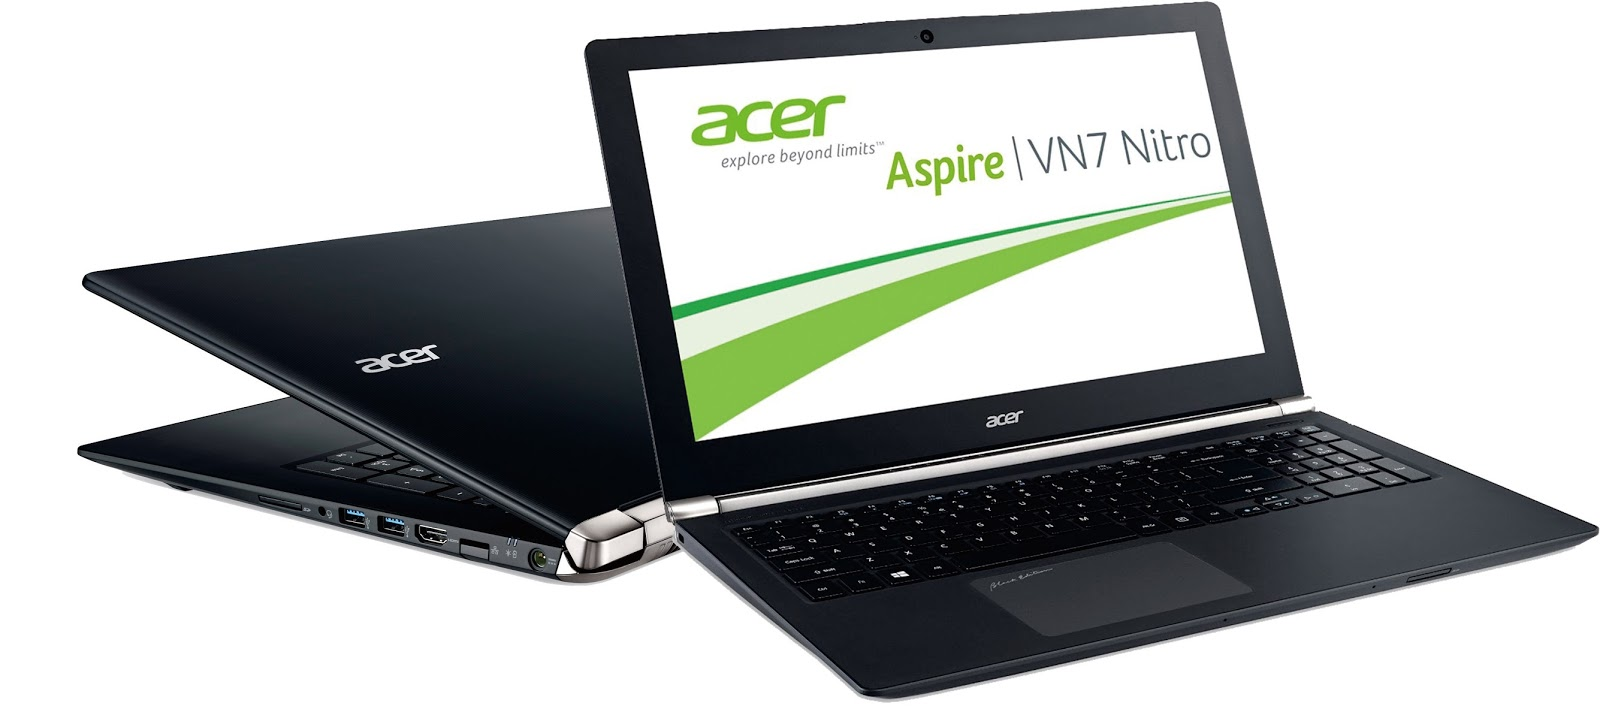 download wifi driver for windows 7 64 bit acer